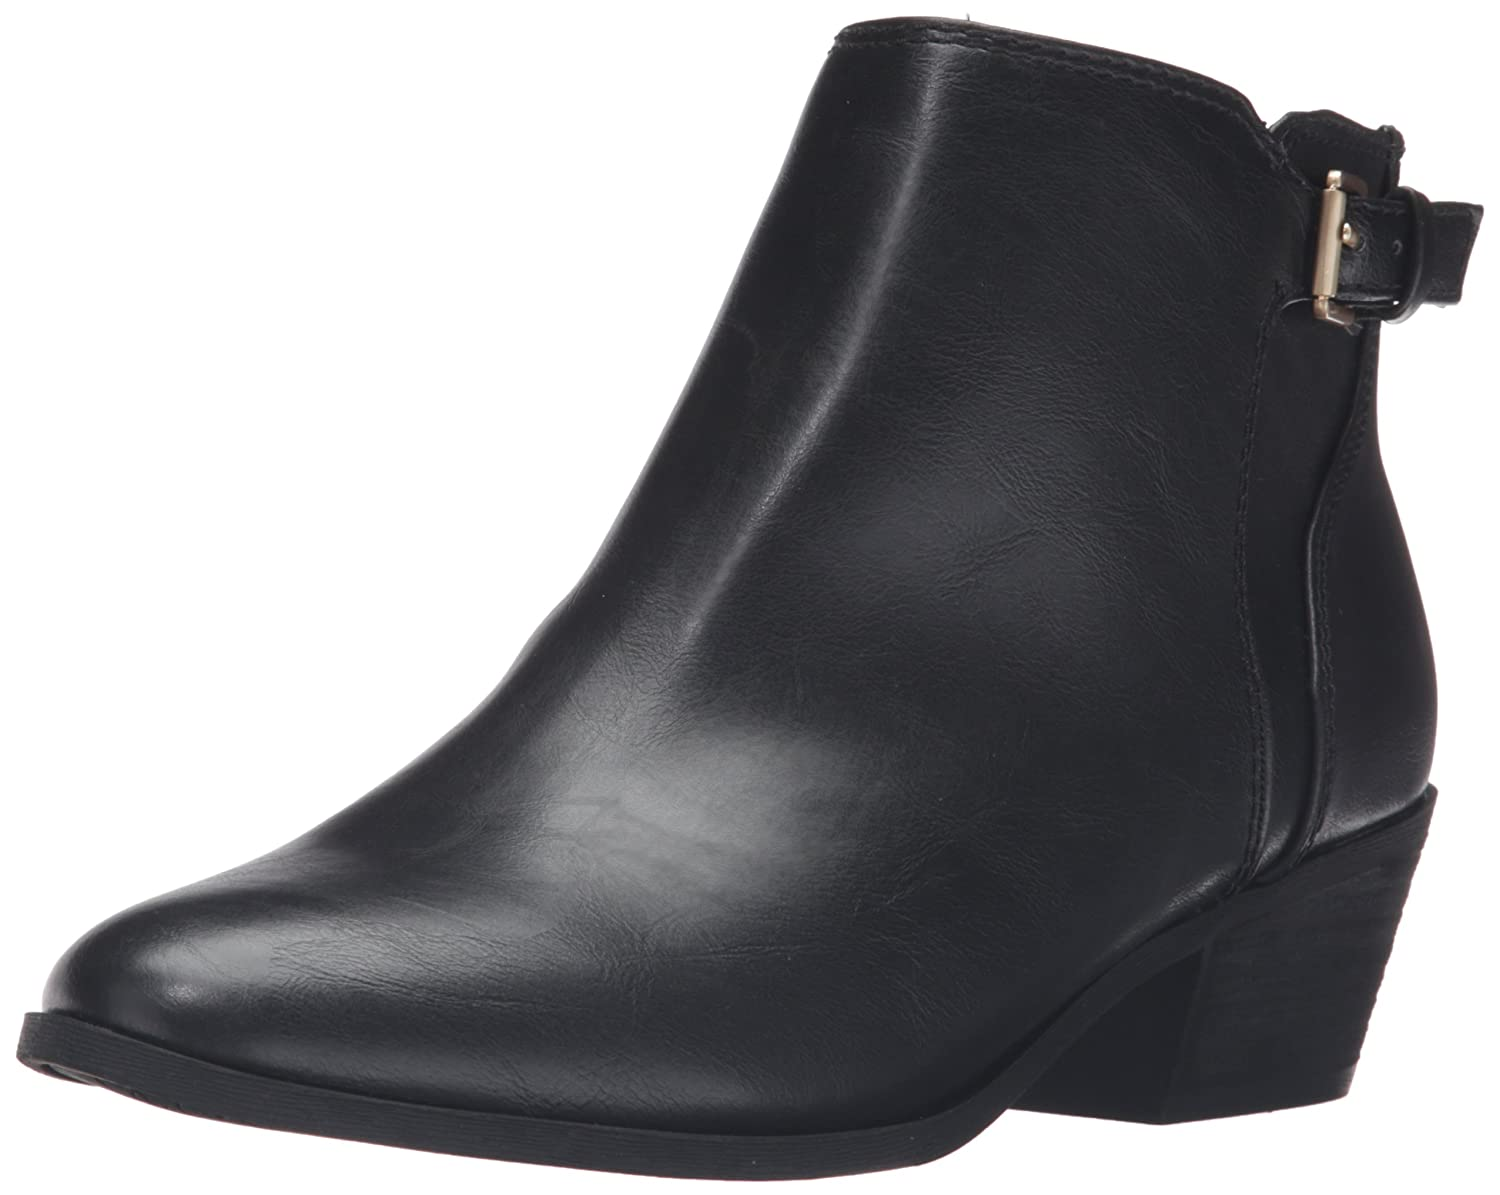 Dr. Scholl's Women's Beckoned Boot B01B2DNPLO 9 B(M) US|Black